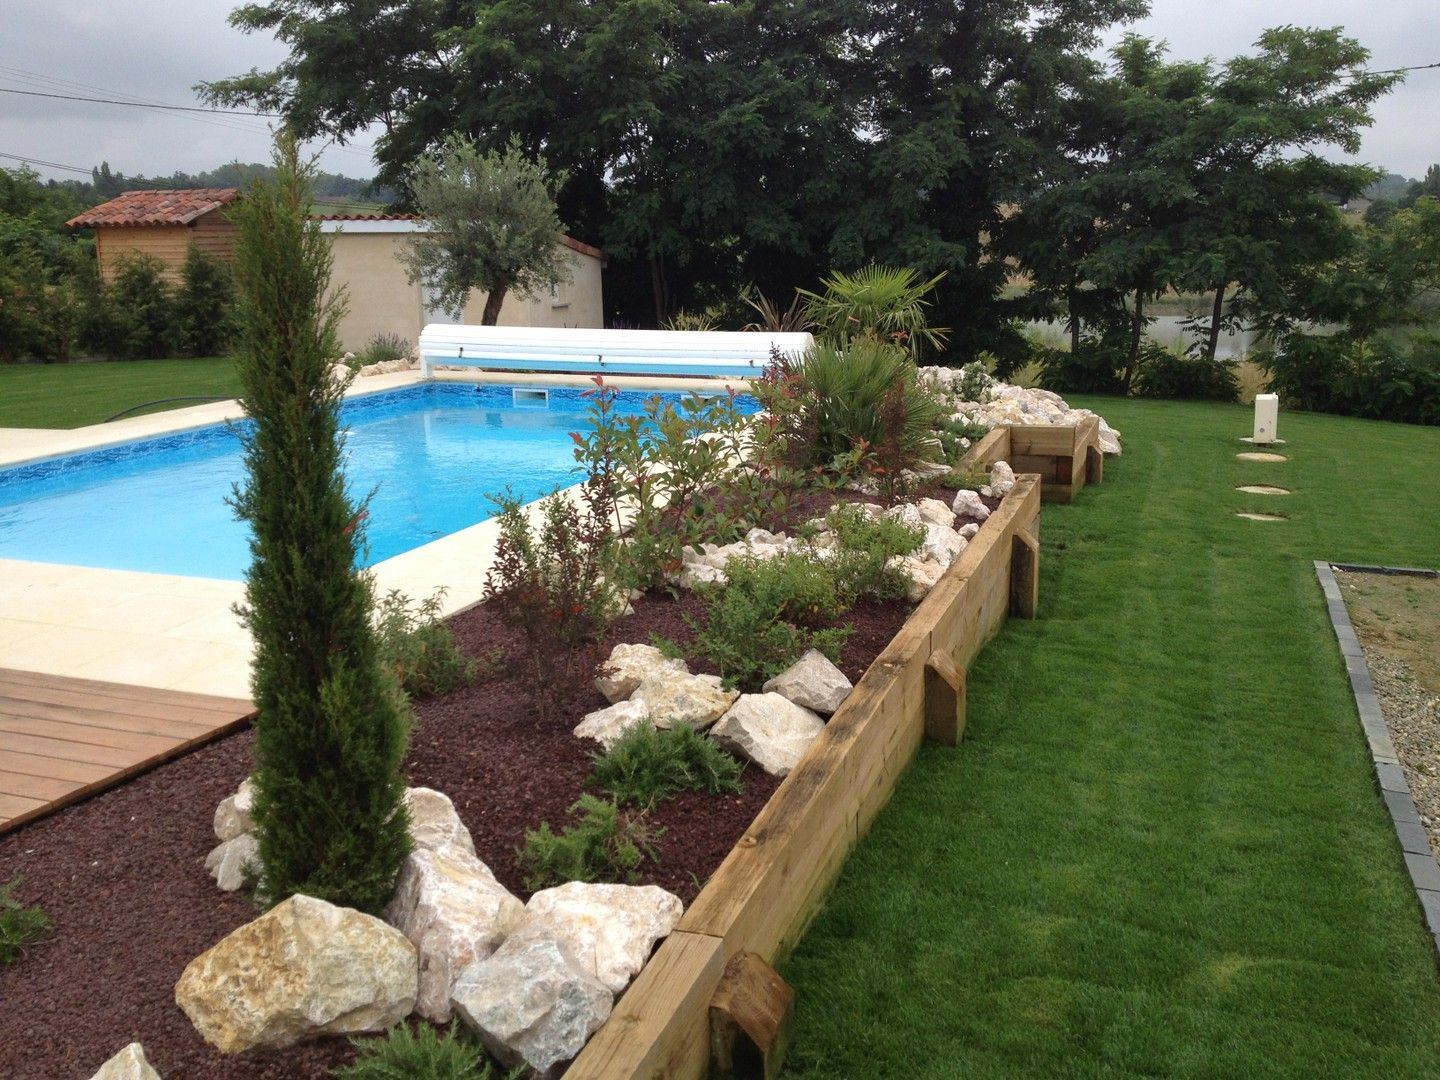 Am nagement tour de piscine pools pinterest swimming - Petite piscine semi enterree ...